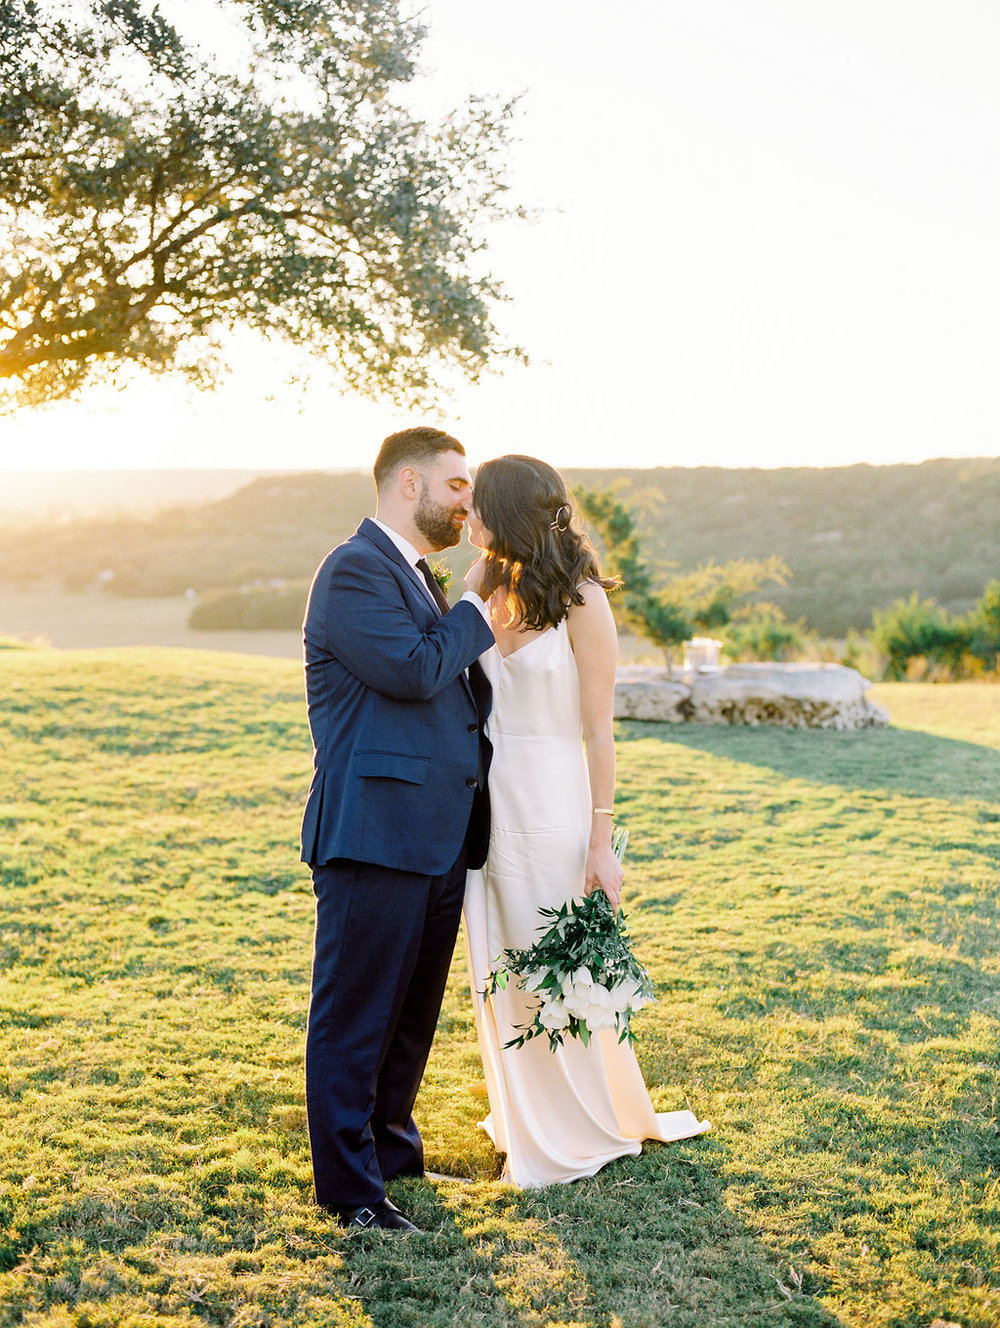 Austin-Film-Wedding-Photographer-Contigo-Ranch-Modern-110.jpg